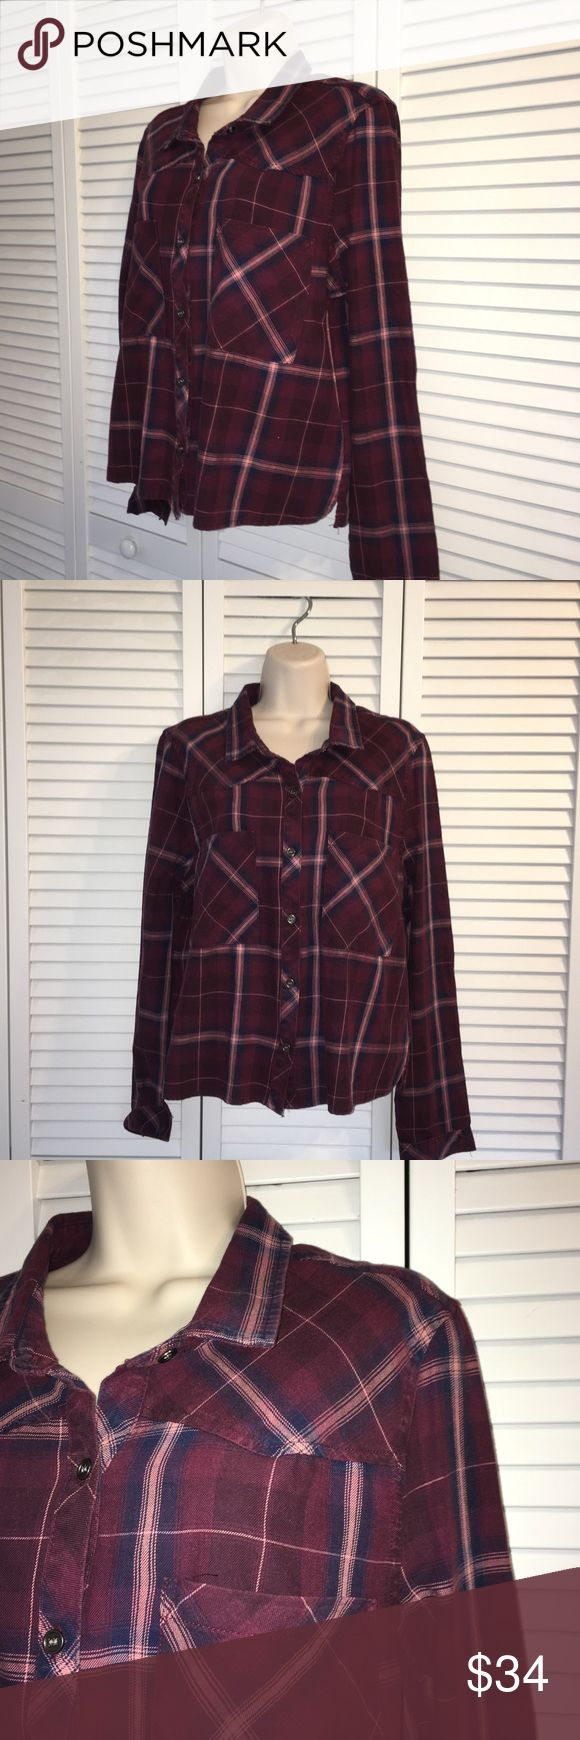 """KENSIE JEANS PLUM PLAID BUTTON UP CROP TOP NWT💕 KENSIE JEANS PLUM PLAID BUTTON UP CROP TOP WITH TWO FRONT POCKETS. 100% COTTON. MEASURES FLAT ACROSS BUST 21 1/2"""" and SHOULDER TO HEM 23"""". SUPER CUTE! NWT💕 Kensie Tops Button Down Shirts"""